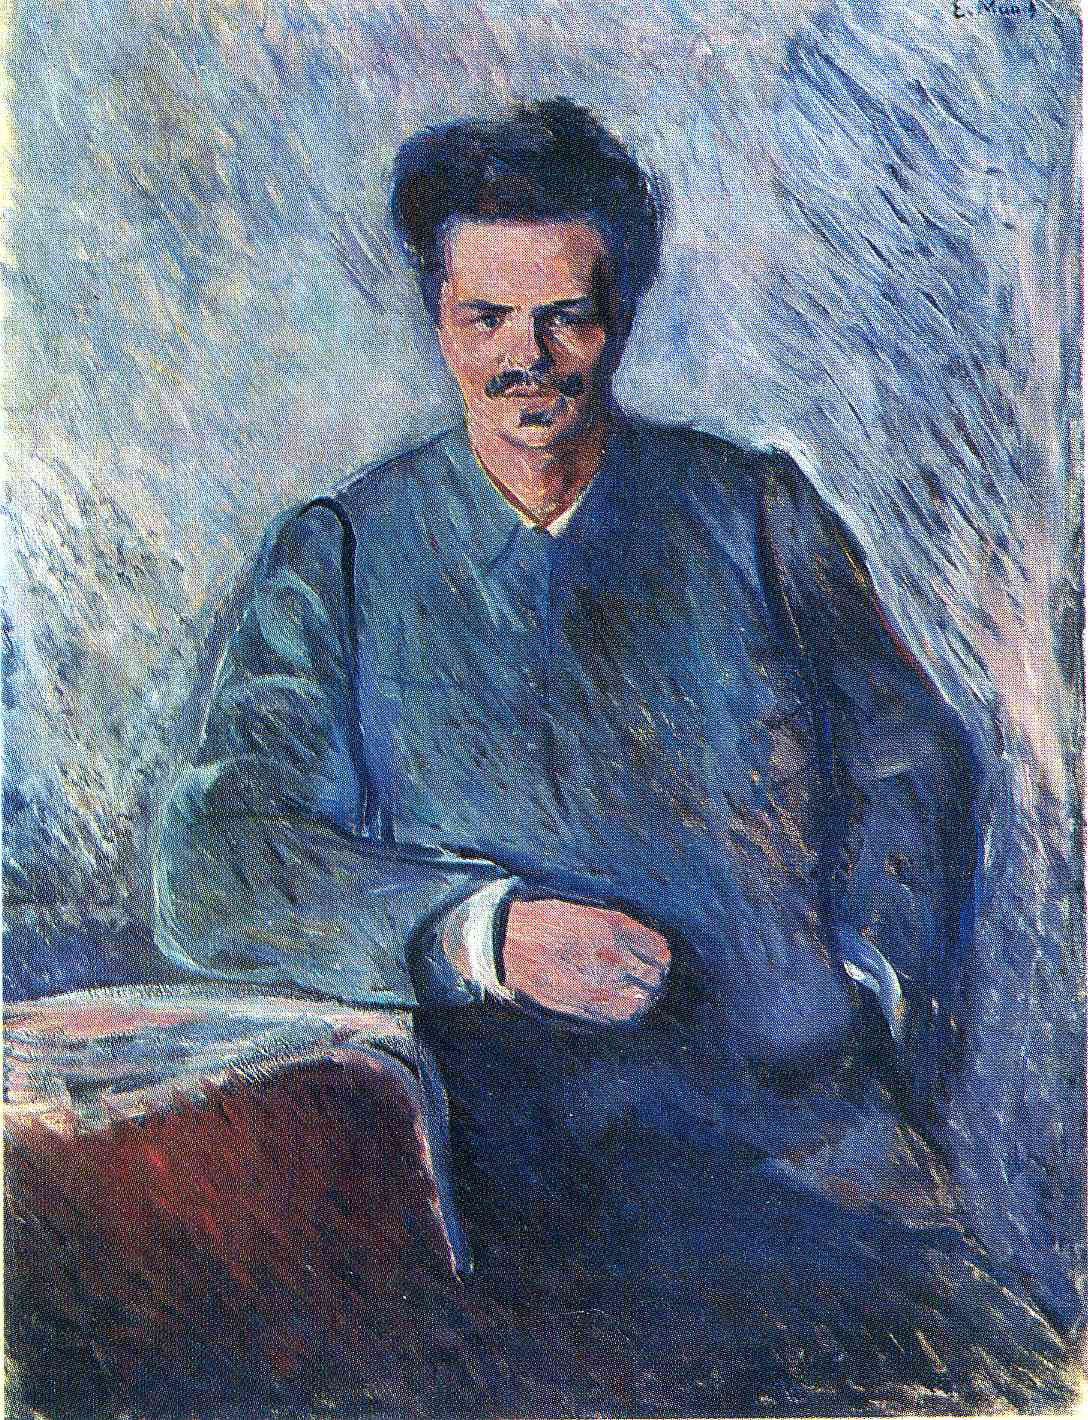 Portrait of Strindberg by Edvard Munch, 1892